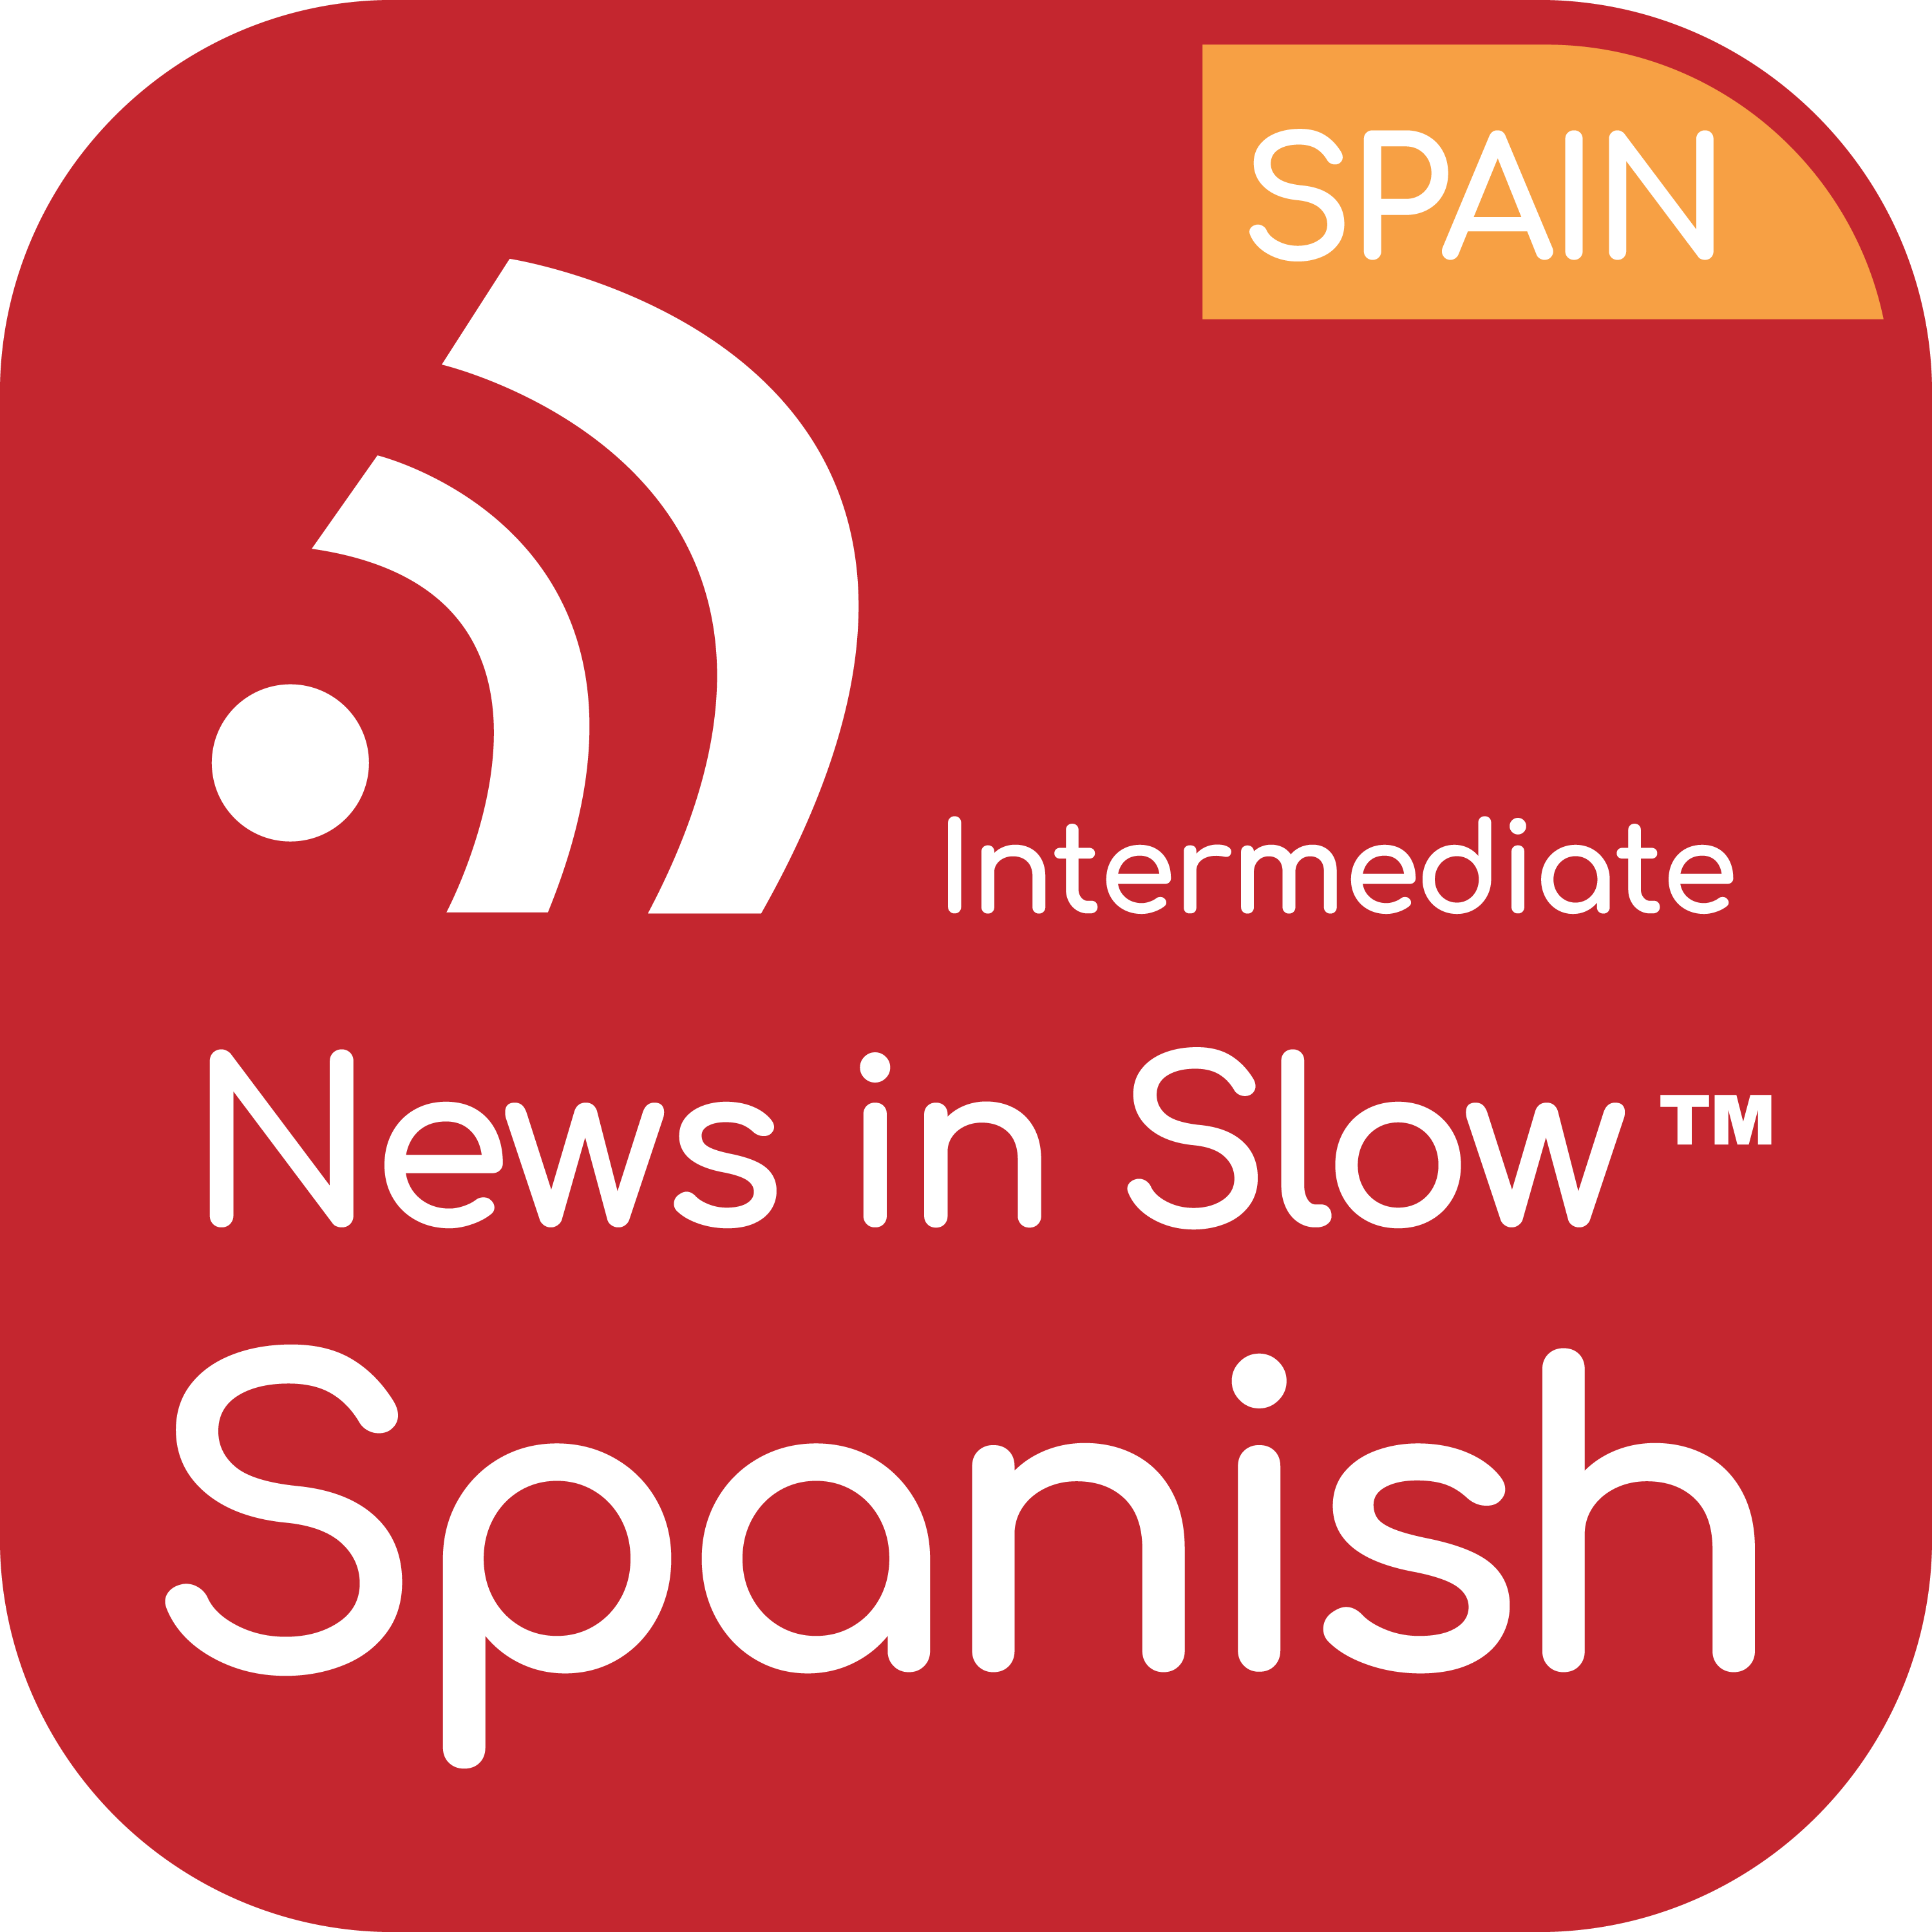 News in Slow Spanish - #580 - Easy Spanish Conversation about Current Events